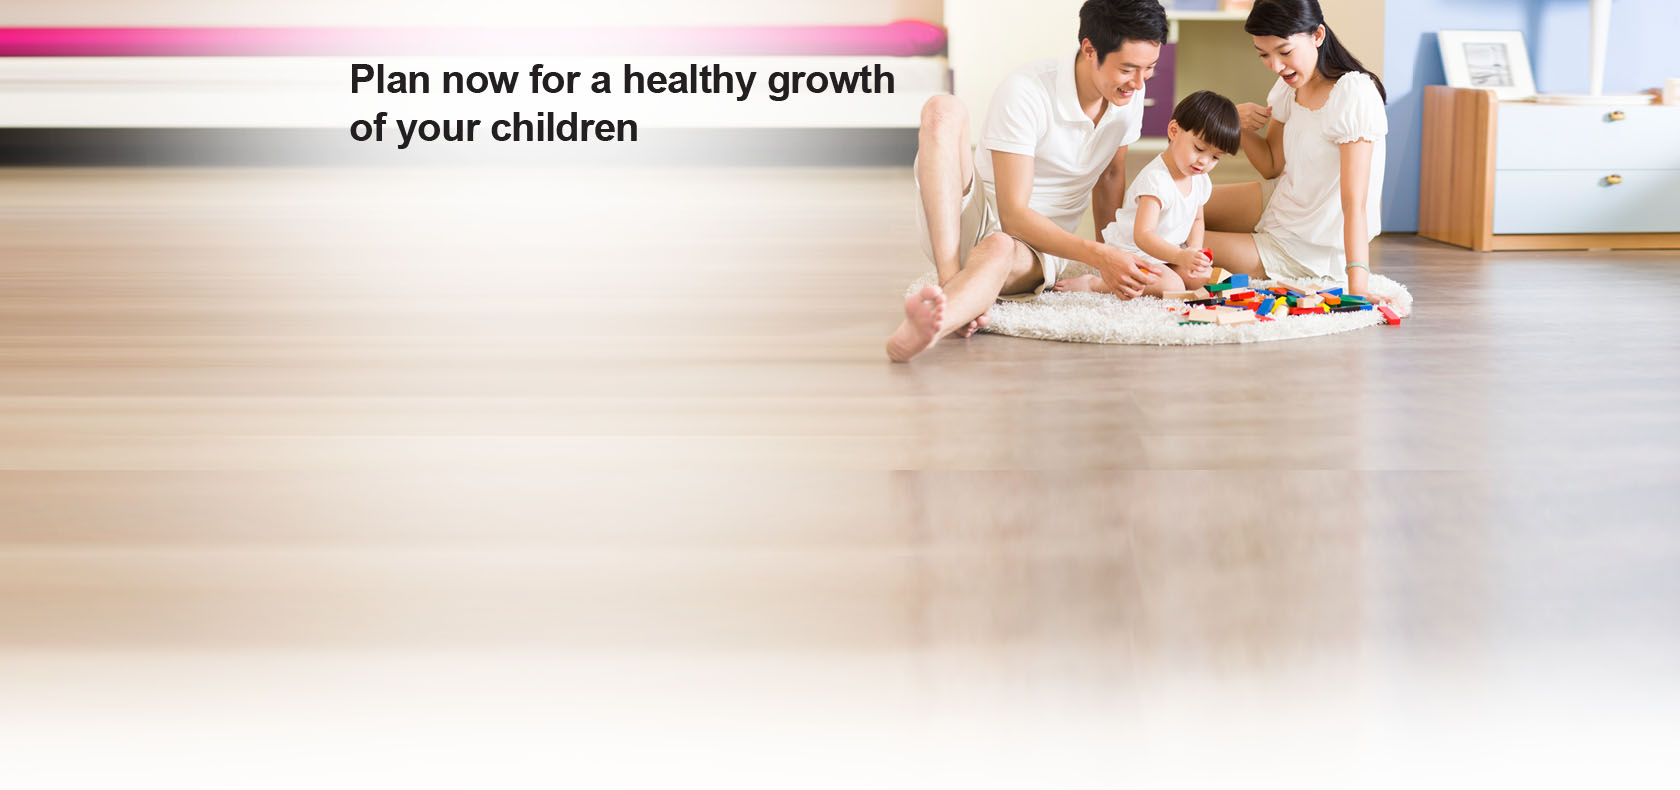 Plan now for a healthy growth of your children